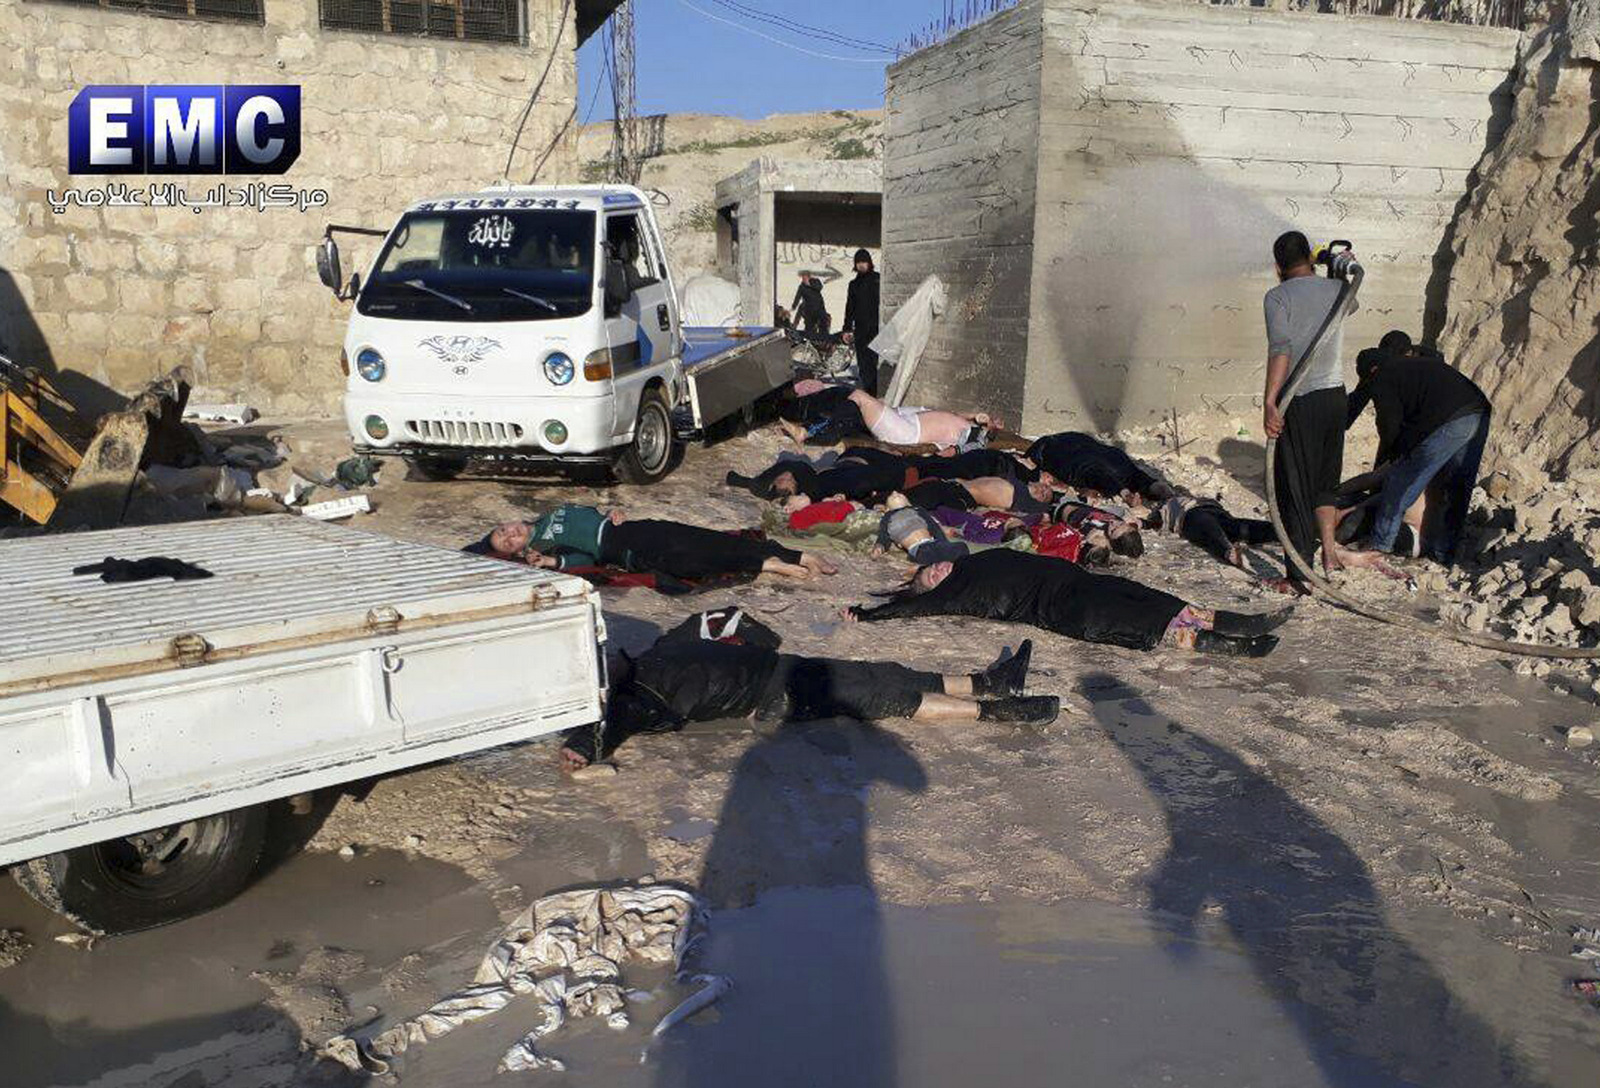 This frame grab from video provided on Tuesday April 4, 2017, by the Syrian anti-government group, the Edlib Media Center, shows victims of a suspected chemical attack, in the town of Khan Sheikhoun, northern Idlib province, Syria. (Edlib Media Center, via AP)